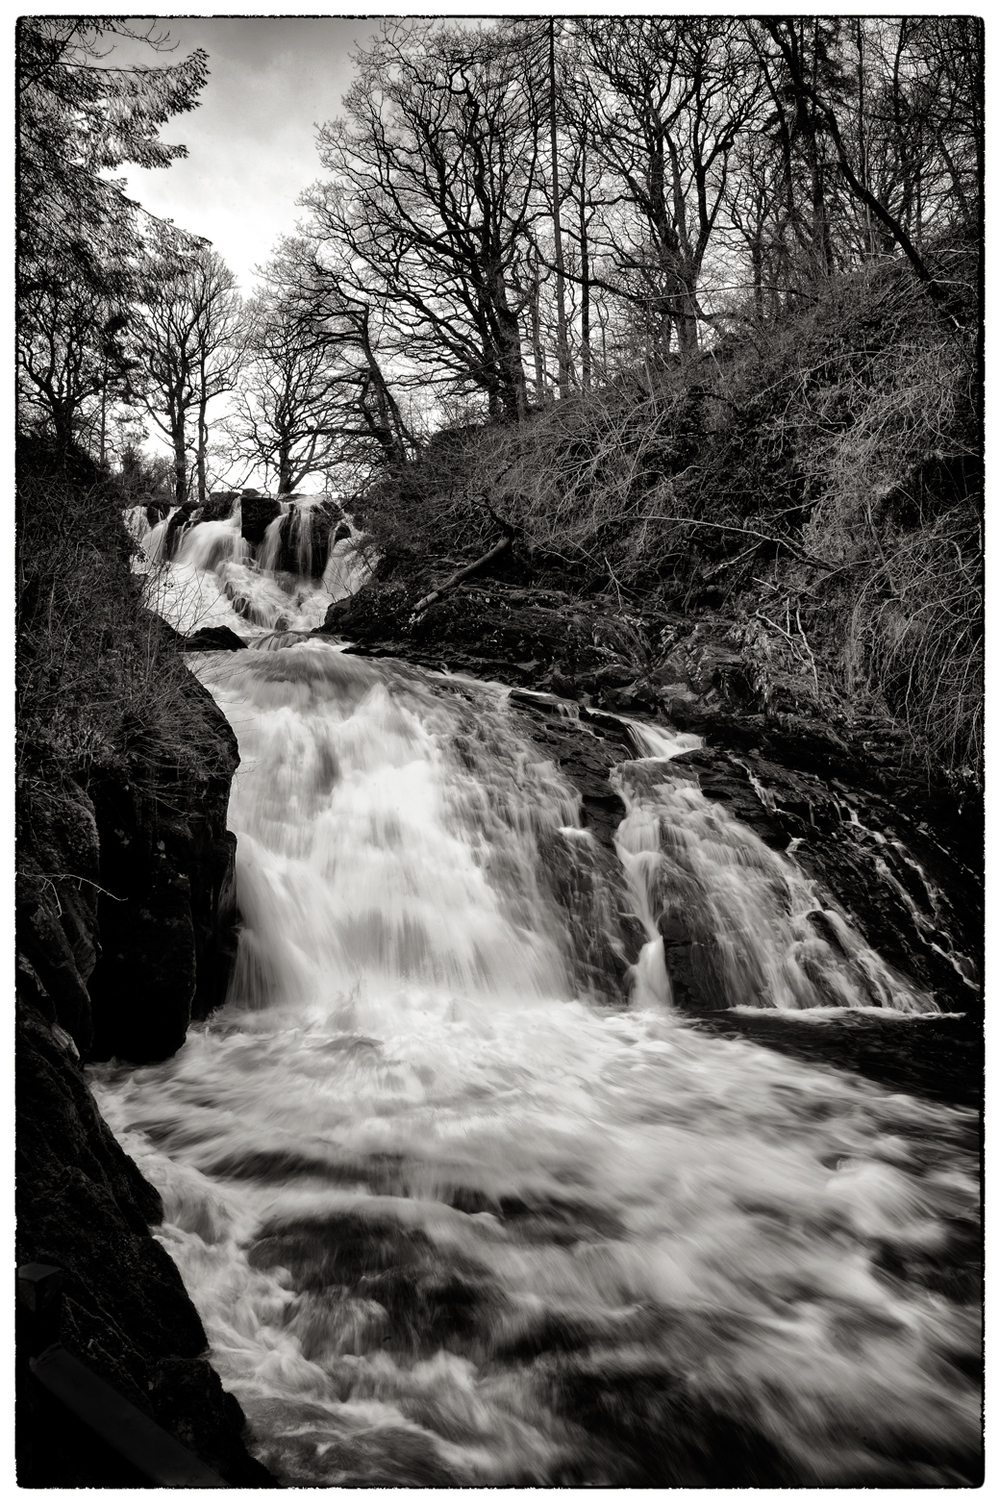 Swallow Falls, just west of Betws-y-Coed.